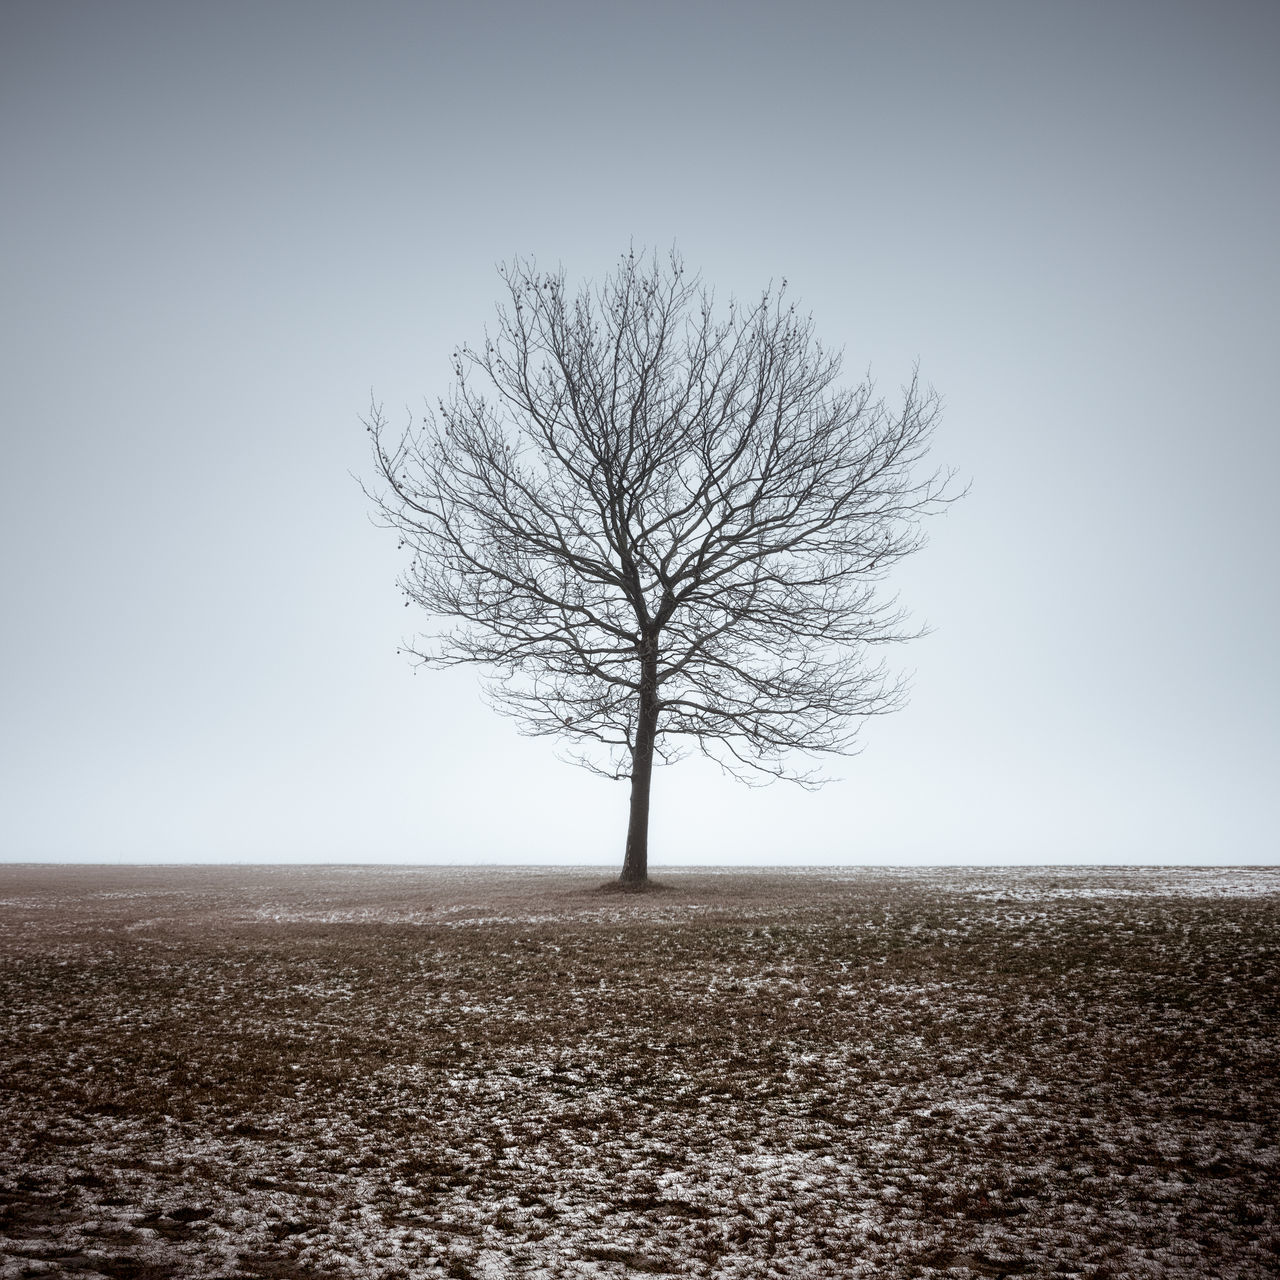 barren tree on the tempelhofer field in berlin Bare Tree Beauty In Nature Berlin Business Clear Sky Day Fine Art Isolated Landscape Lone Long Exposure Muted Colors Nature No People Outdoors Philipp Dase Remote Single Tree Sky Solitude Tempelhofer Feld Tranquil Scene Tree Tree Trunk Water